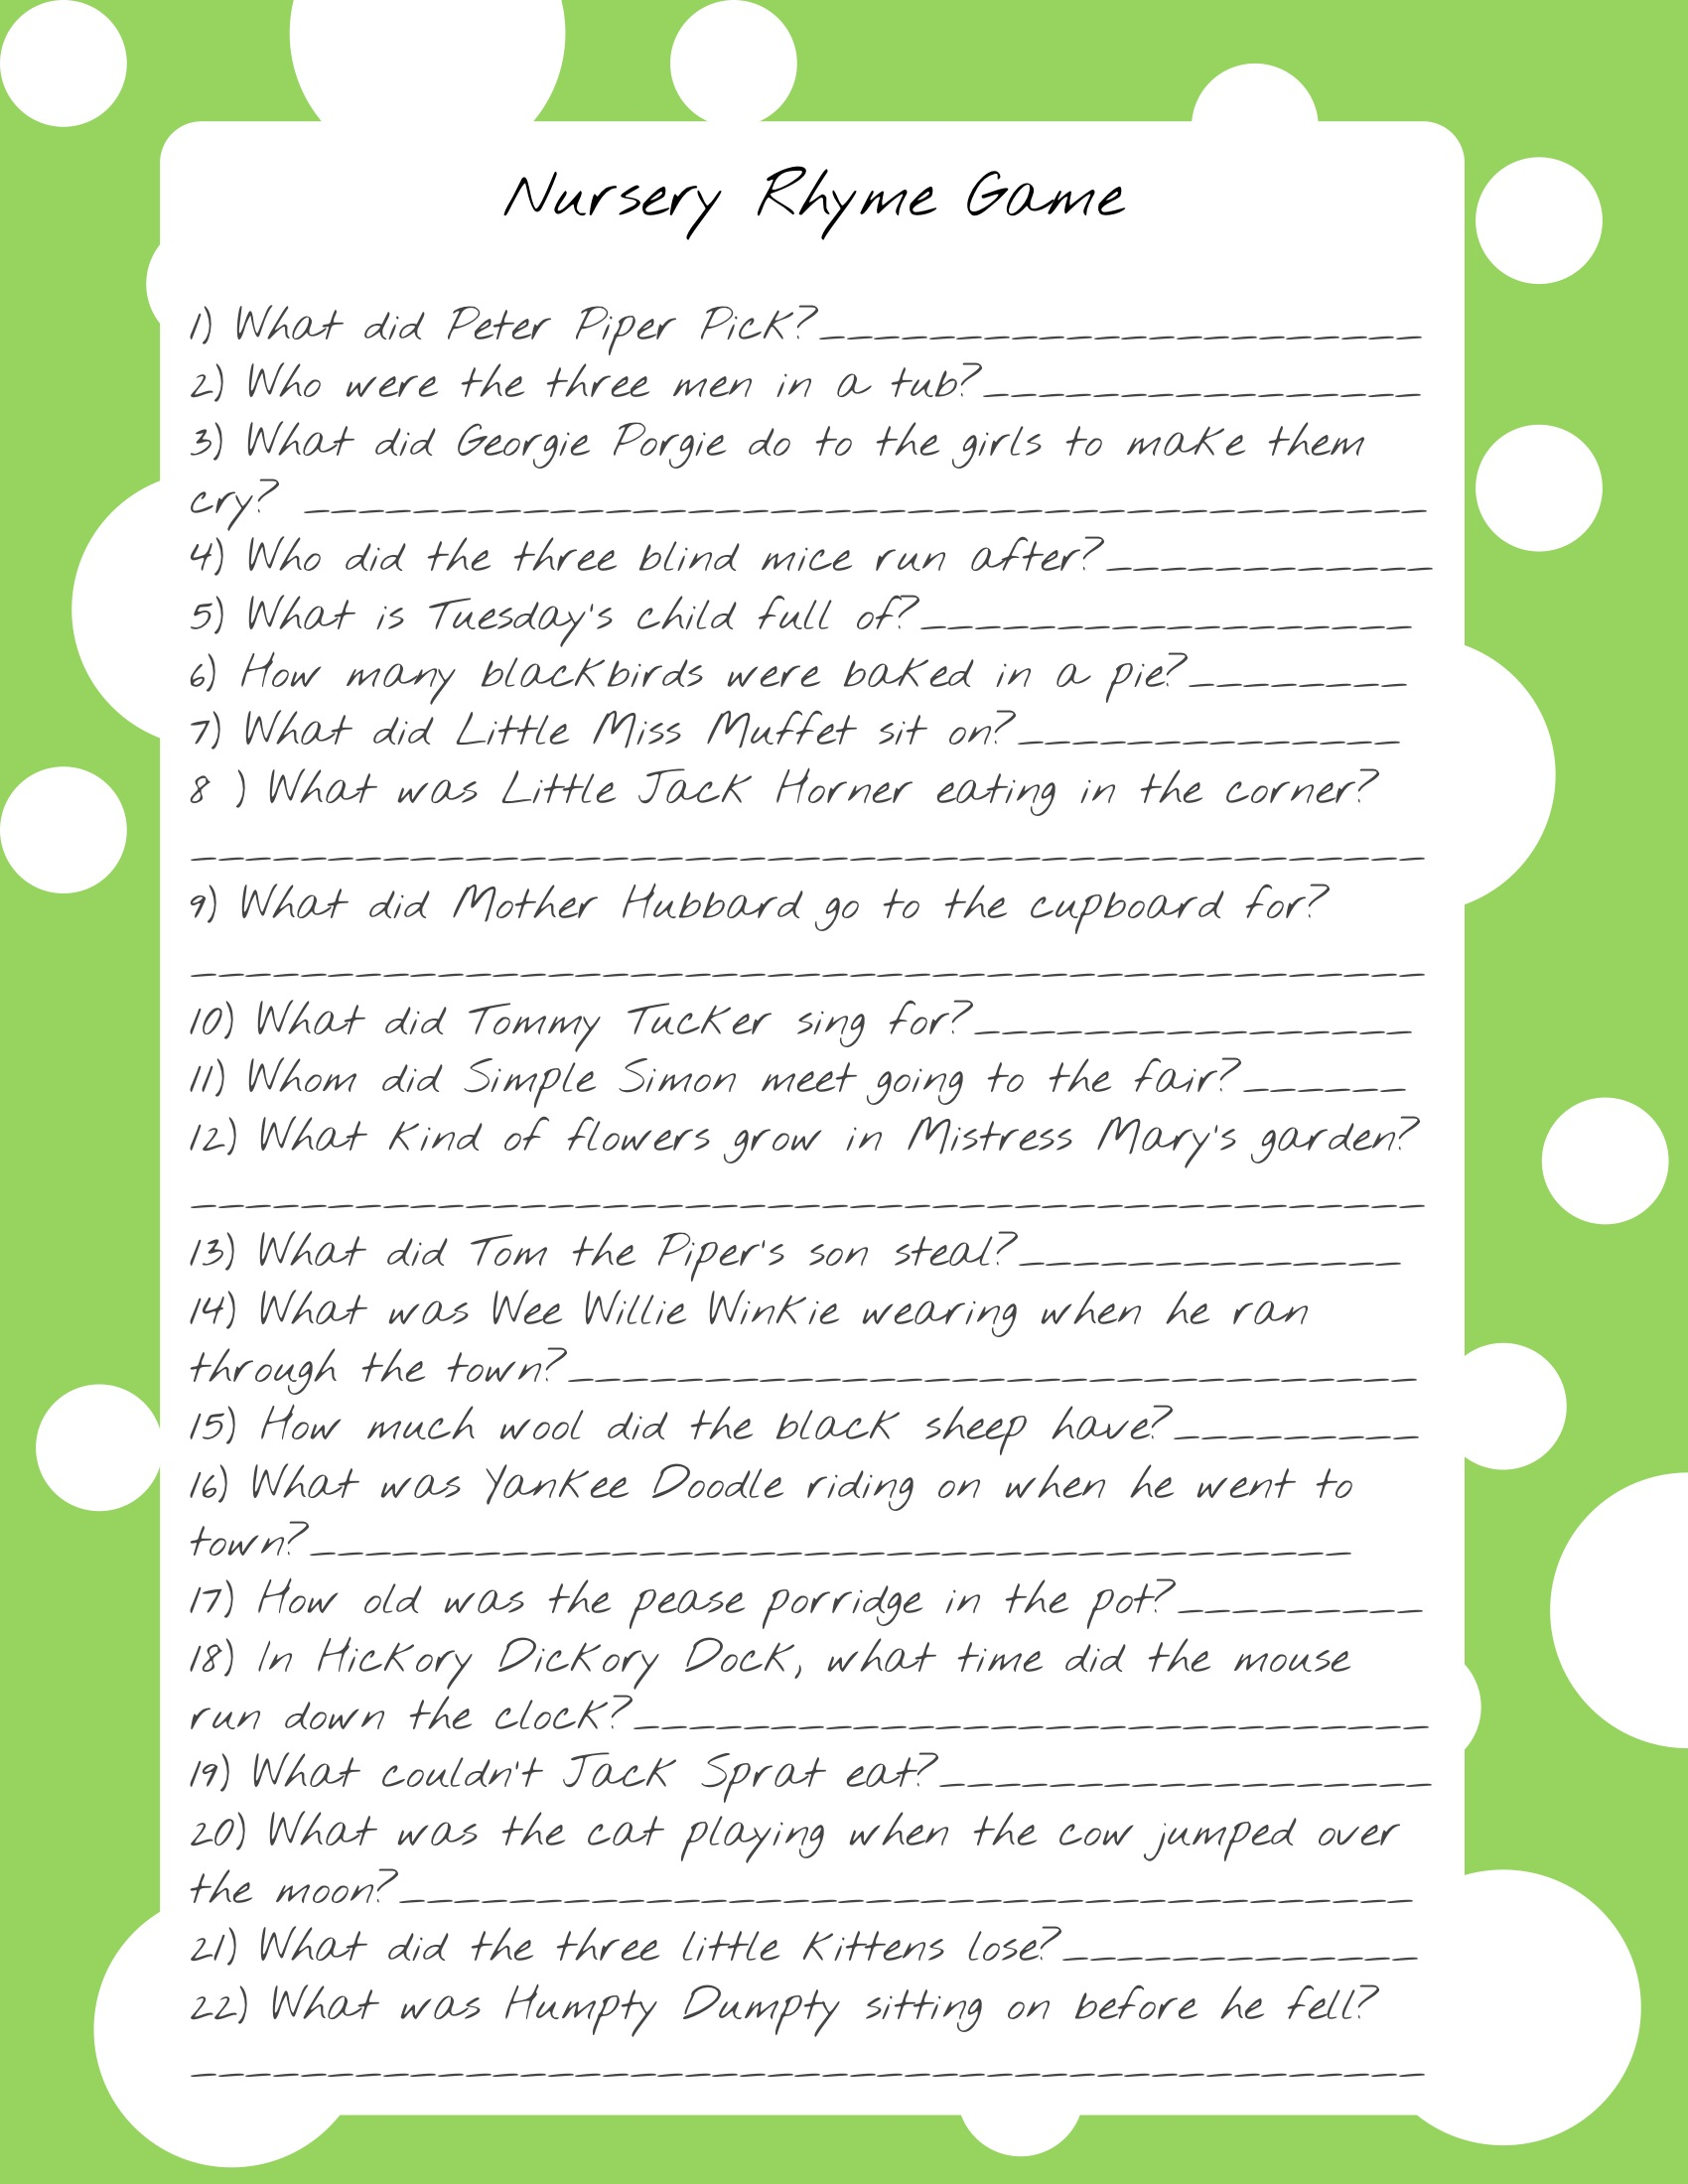 Baby Shower Nursery Rhyme Game Template Adorable Baby Shower Games